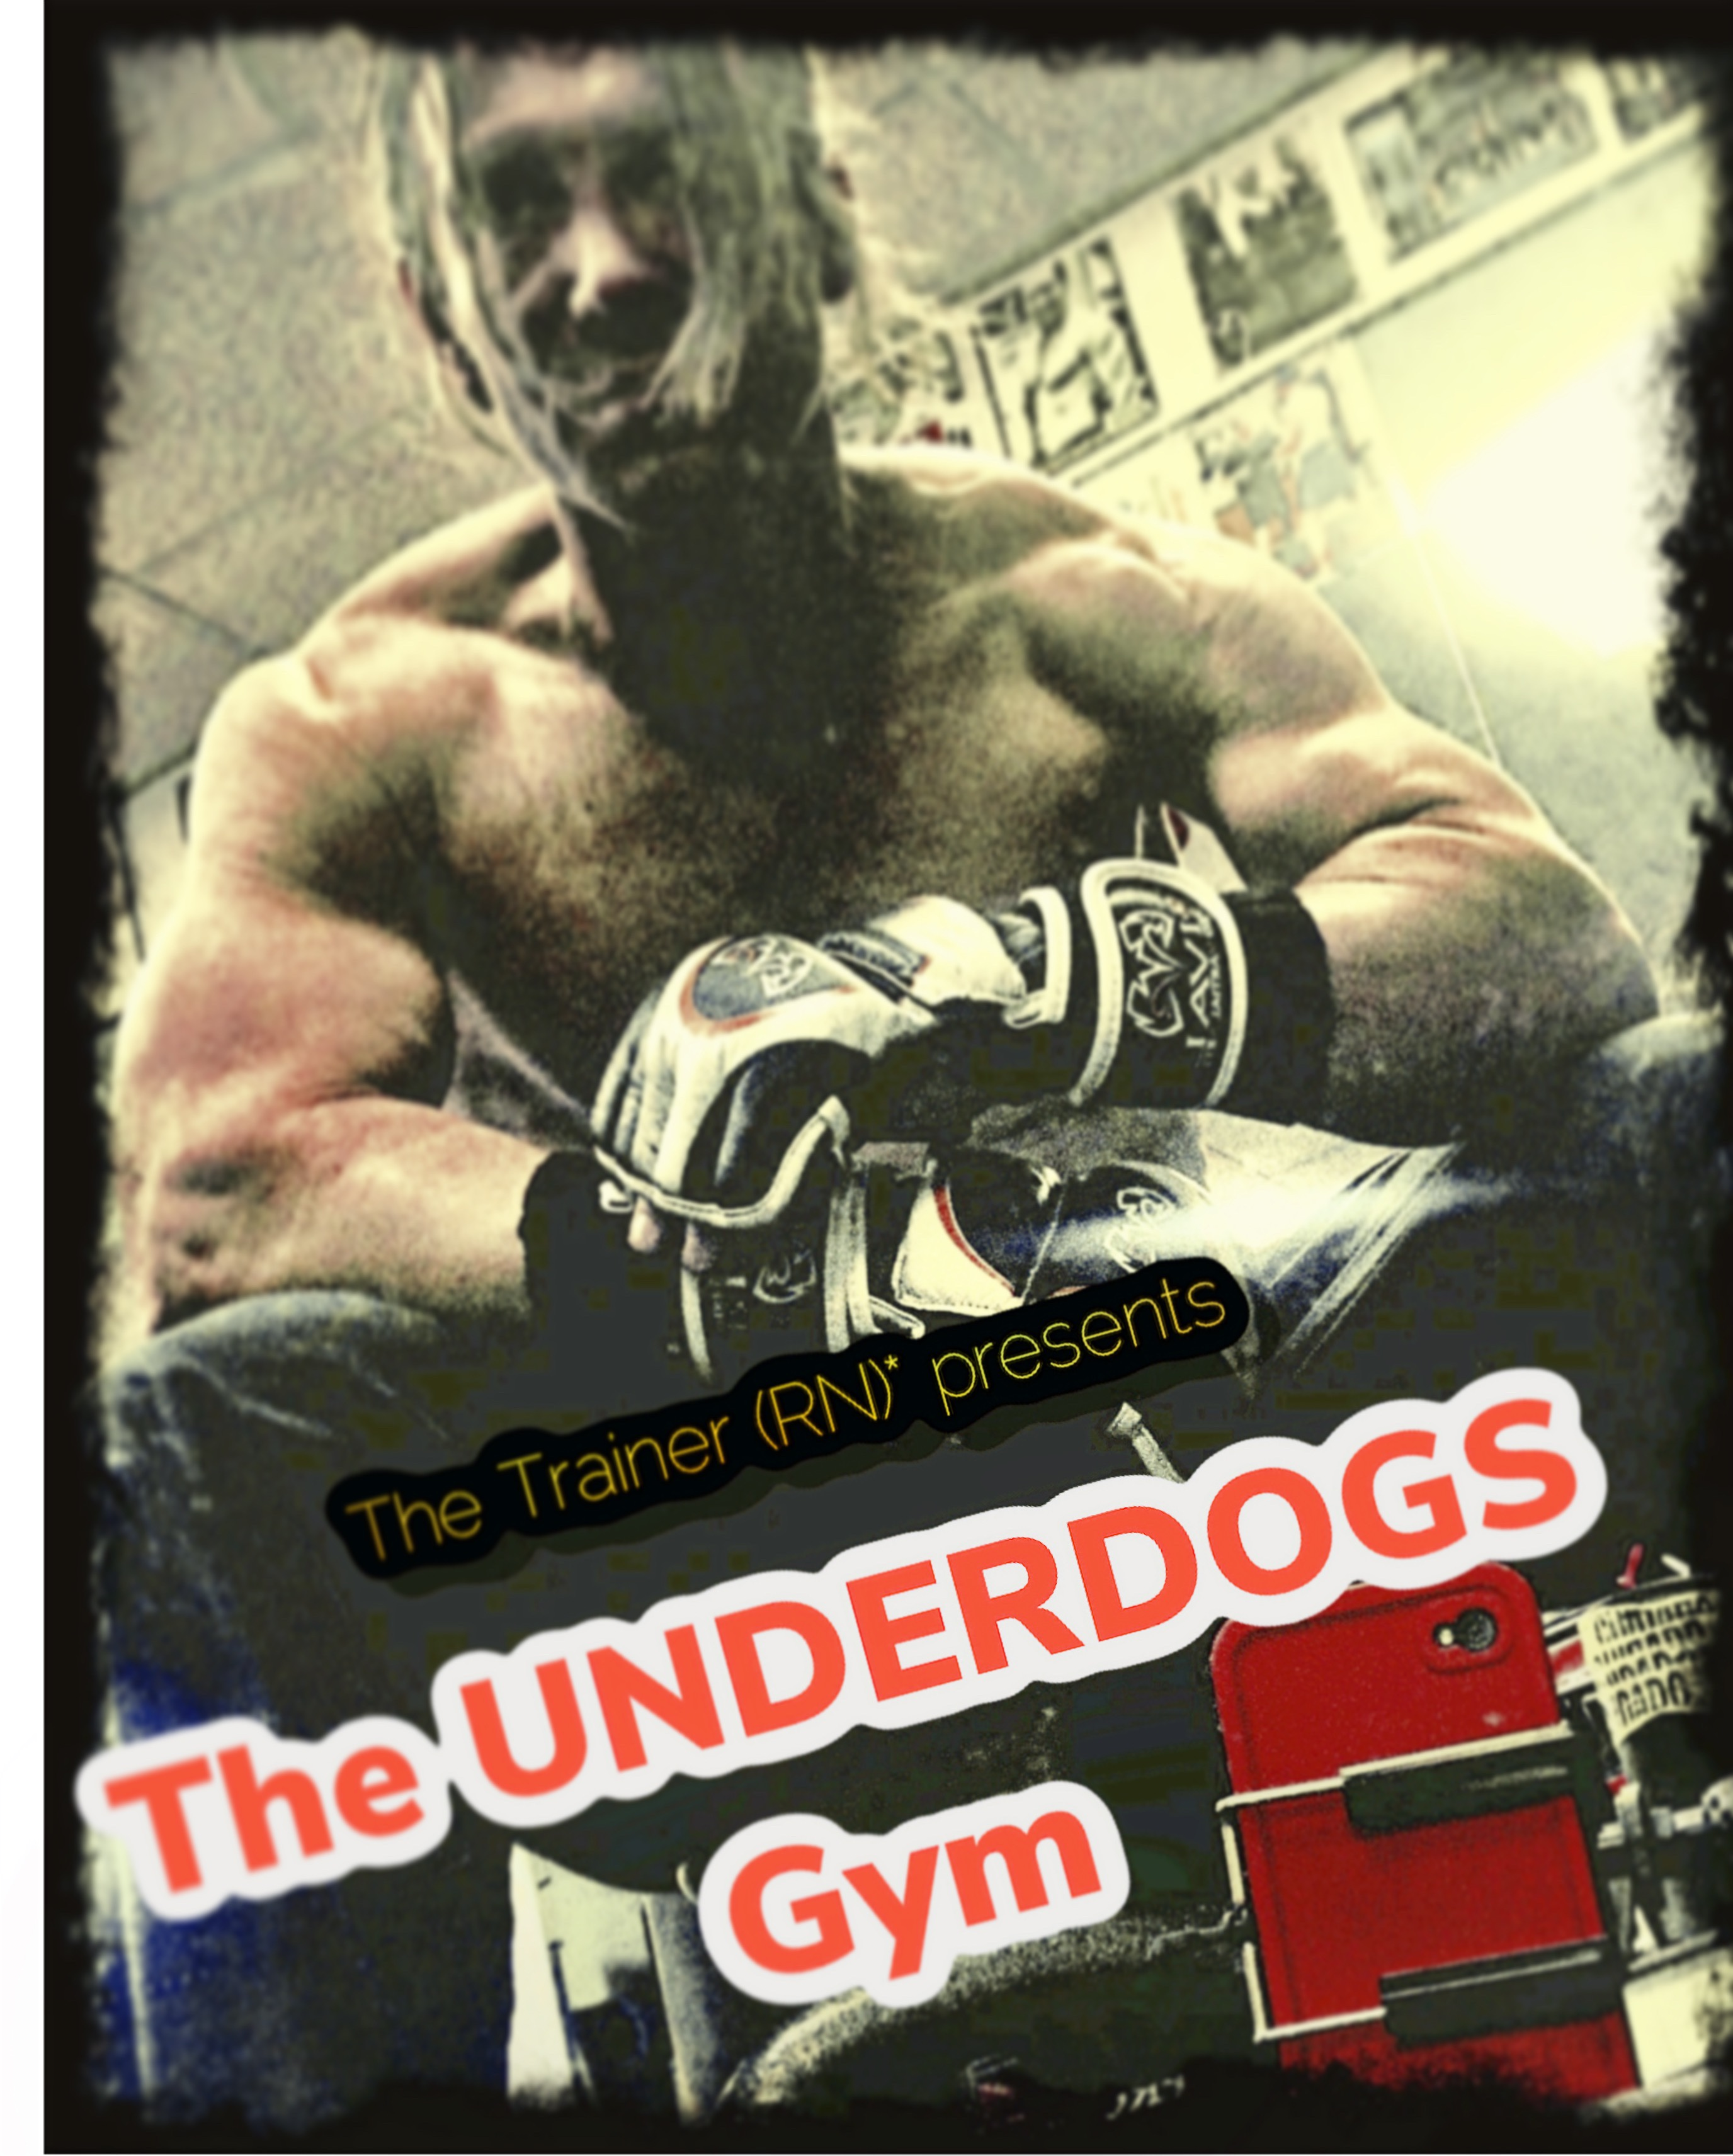 The Trainer Presents: The UNDERDOGS Gym